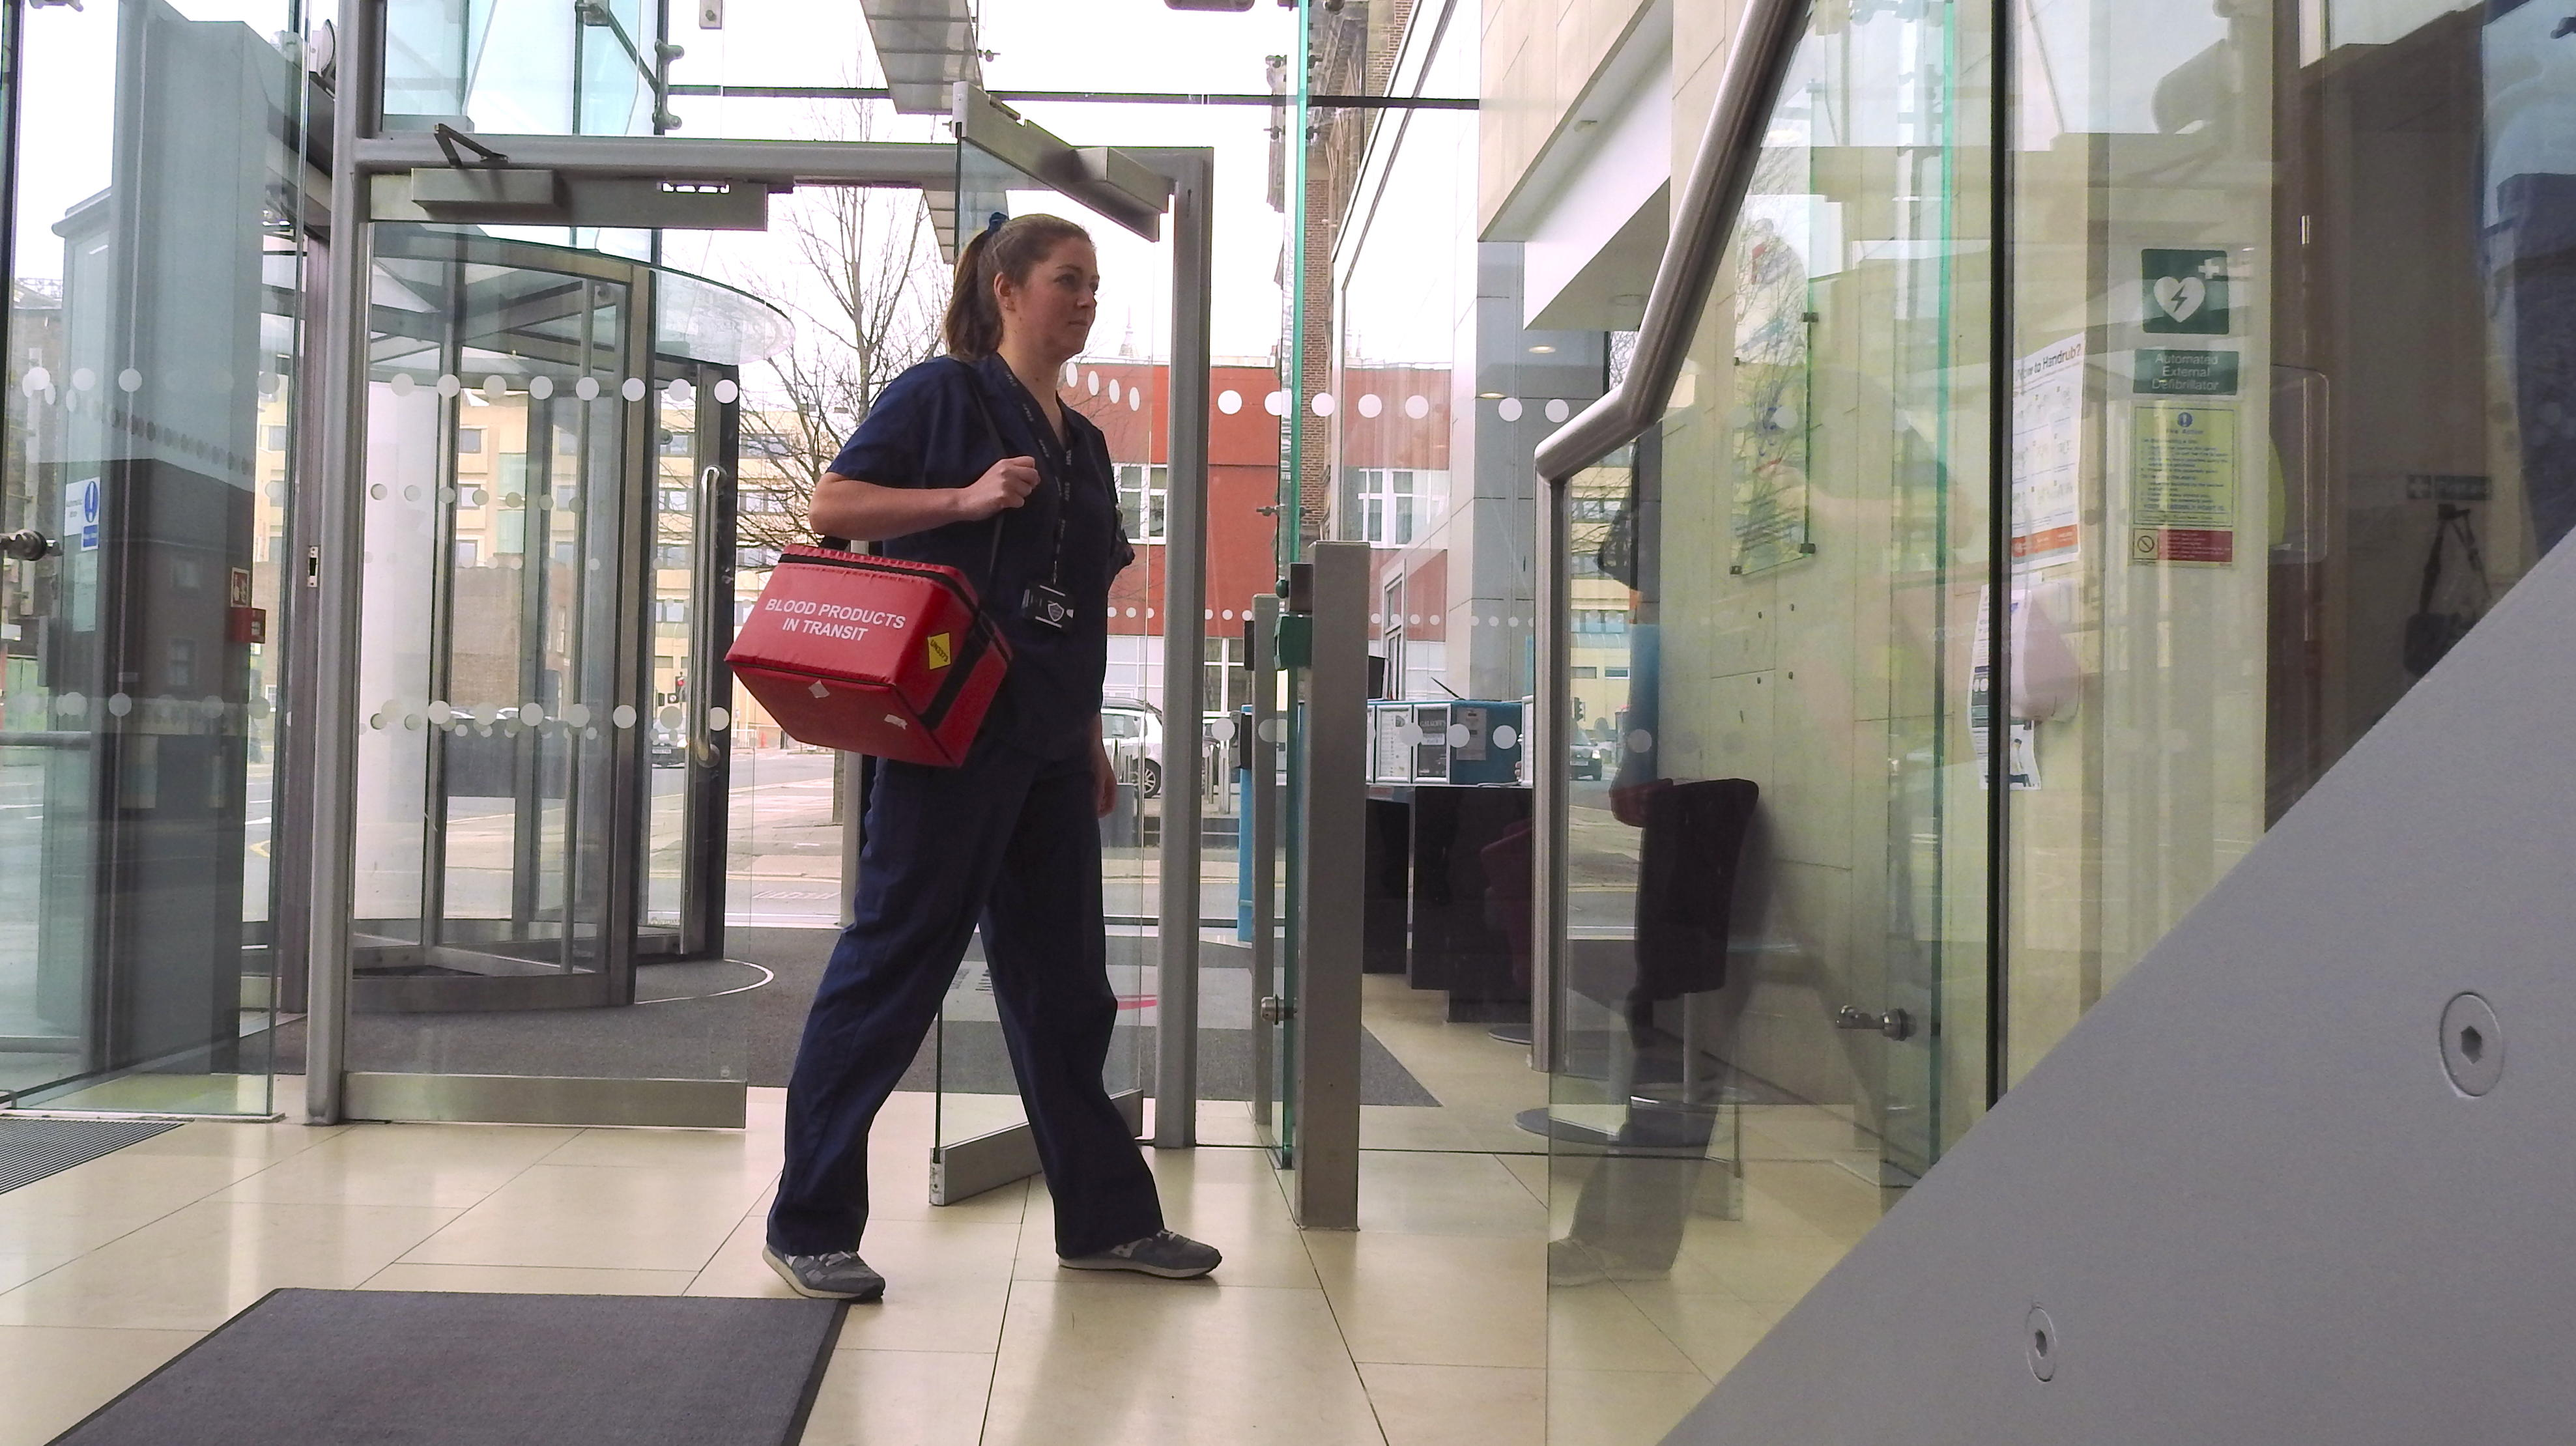 Research nurse arriving at CTID to transfer study samples to the laboratory